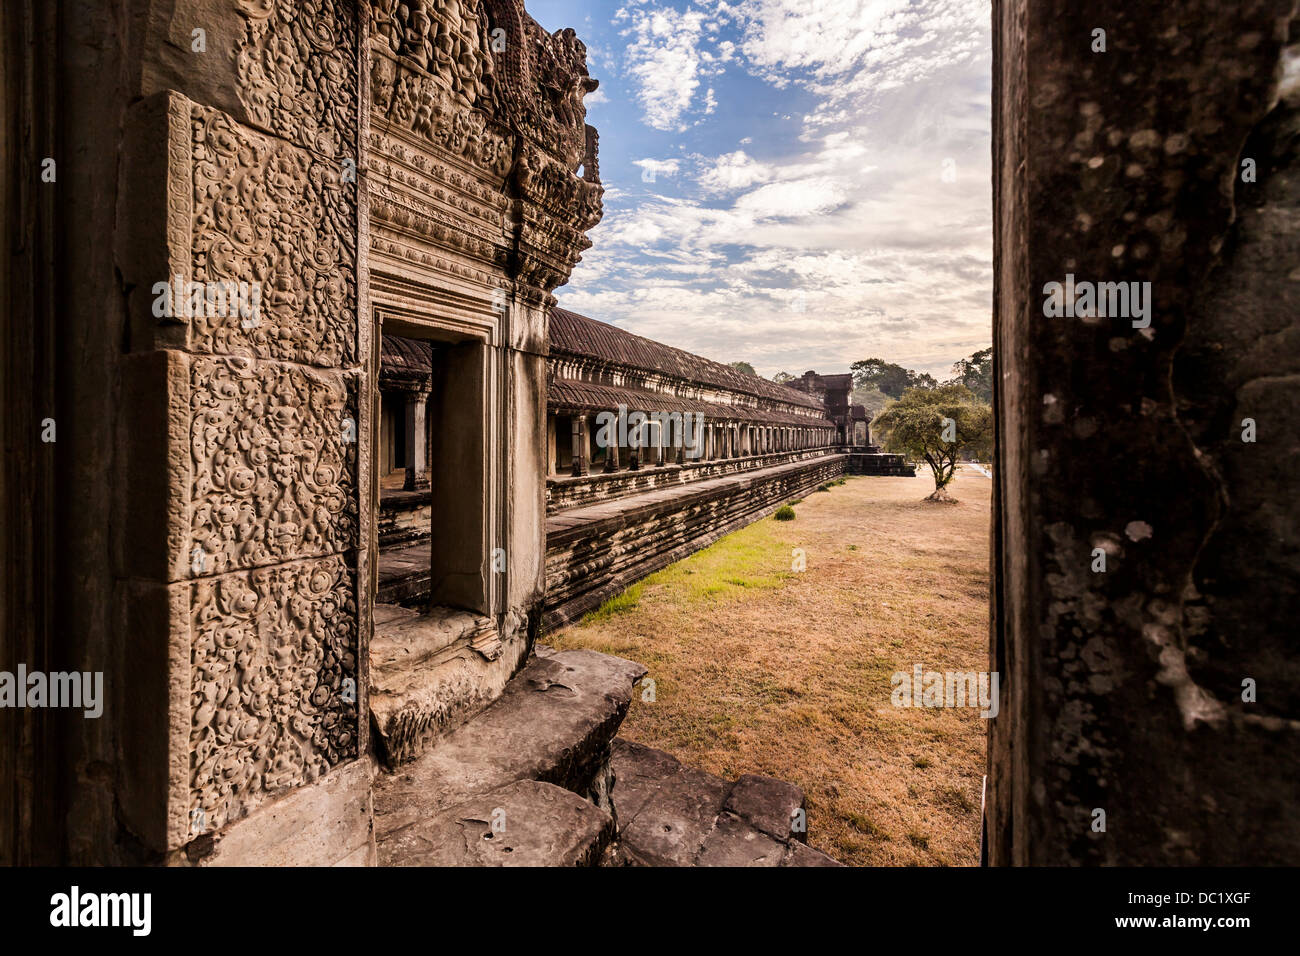 Temple courtyard in Angkor Wat, Siem Reap, Cambodia - Stock Image